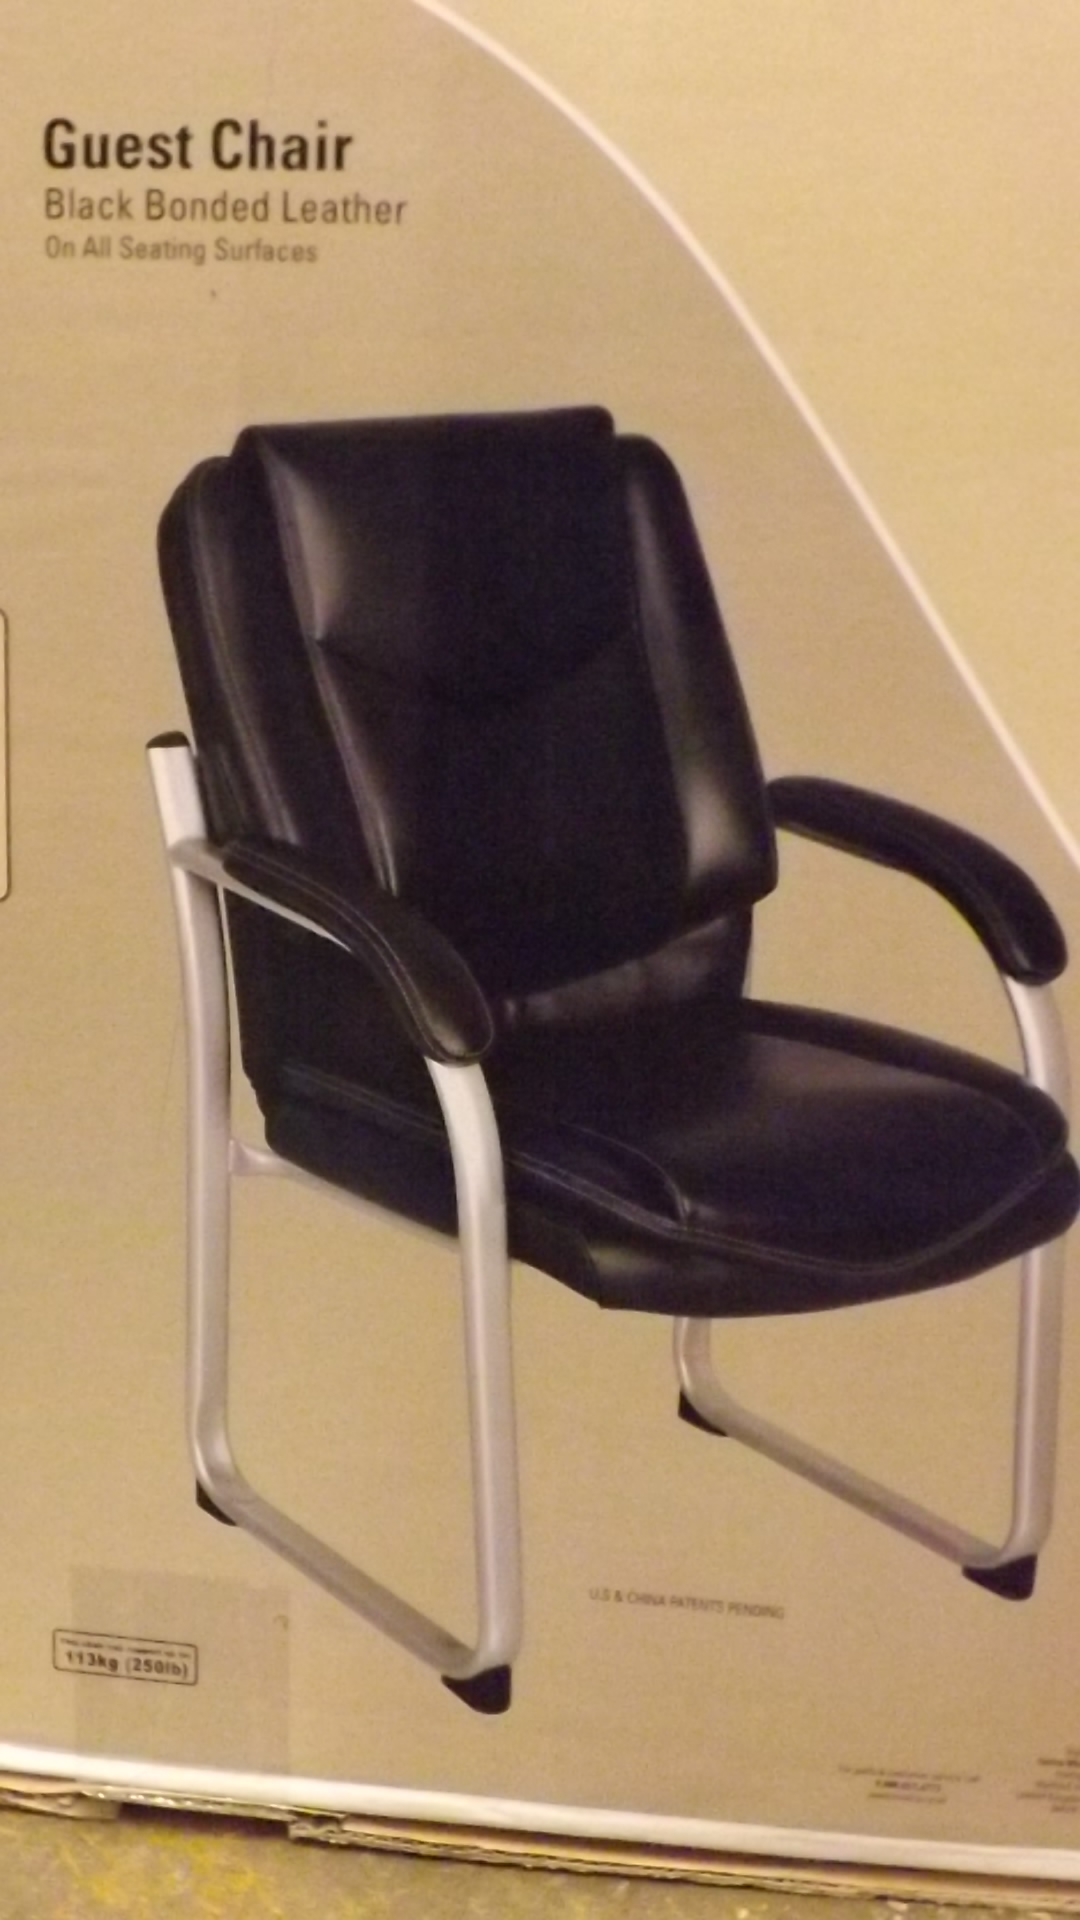 Lot 495   1 BOXED TRUE INNOVATIONS BLACK BONDED LEATHER GUEST CHAIR RRP £129